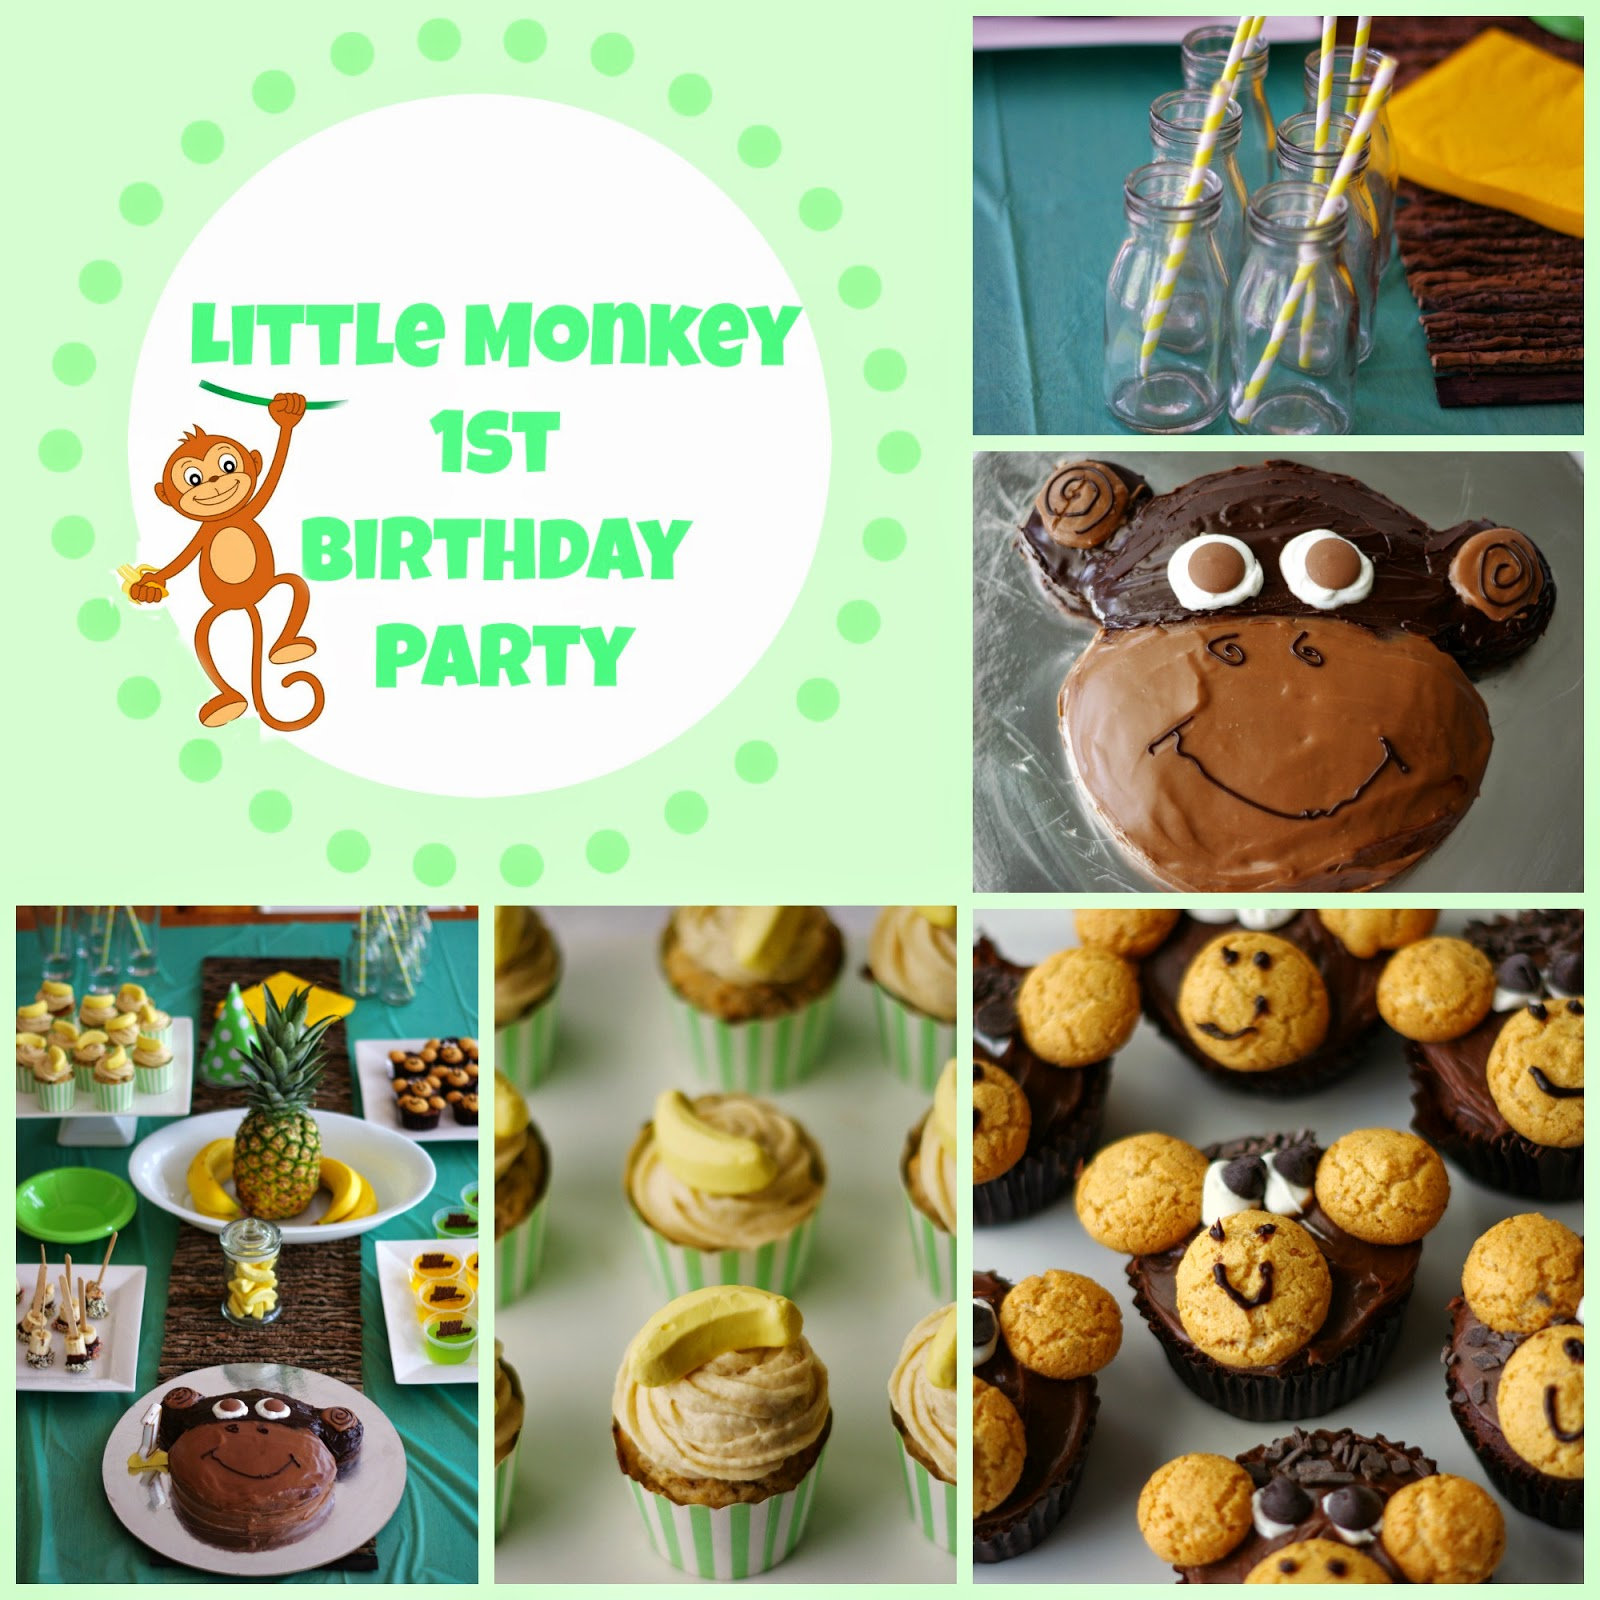 the nOATbook Little Monkey 1st Birthday Party